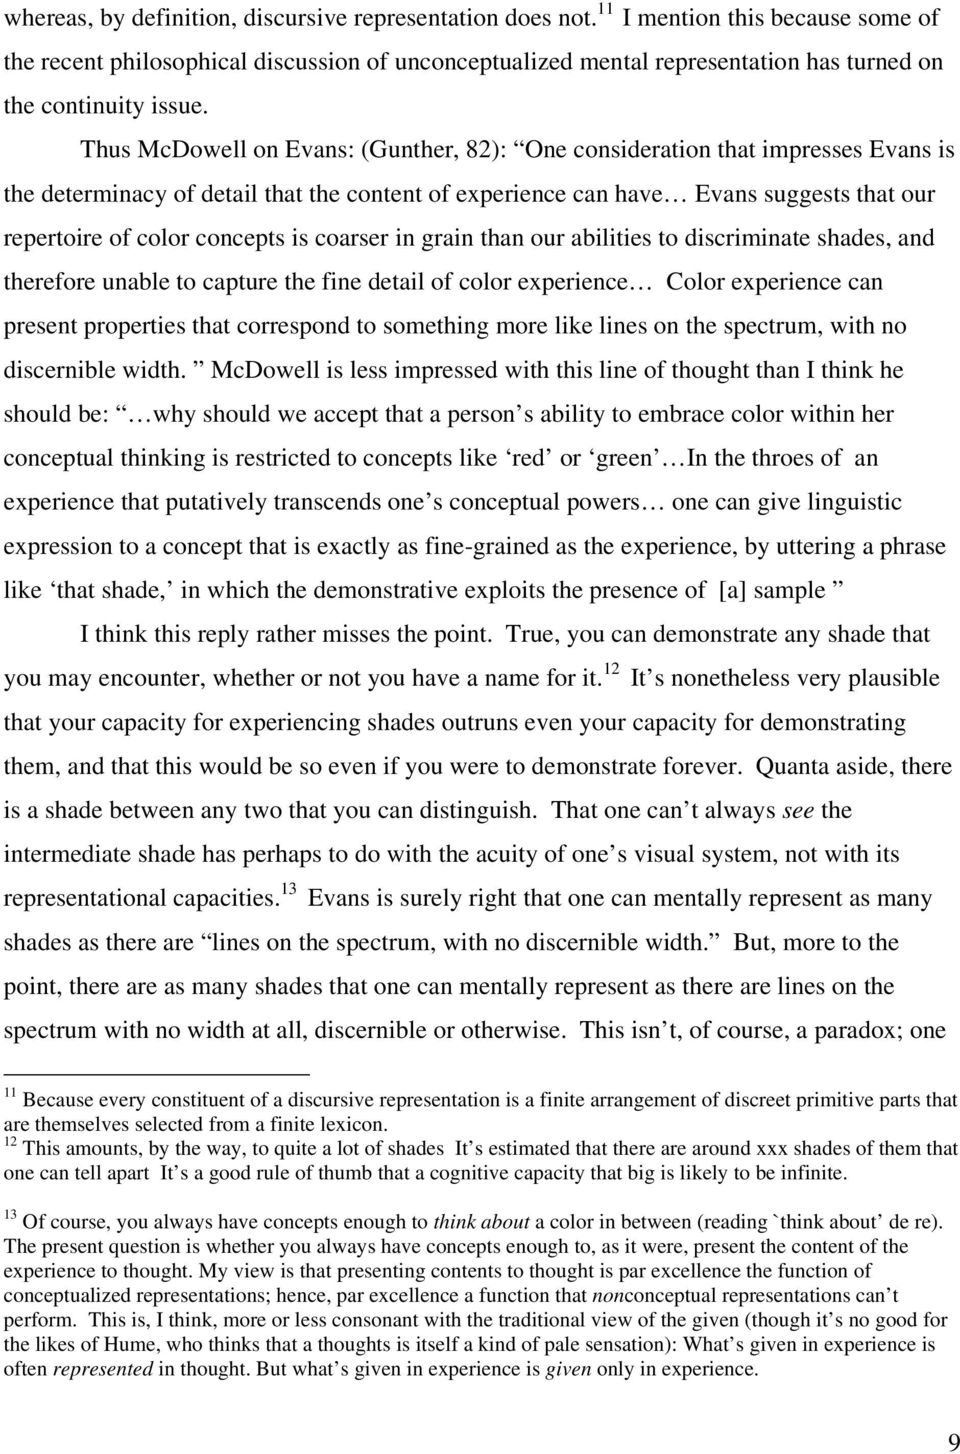 Thus McDowell on Evans: (Gunther, 82): One consideration that impresses Evans is the determinacy of detail that the content of experience can have Evans suggests that our repertoire of color concepts